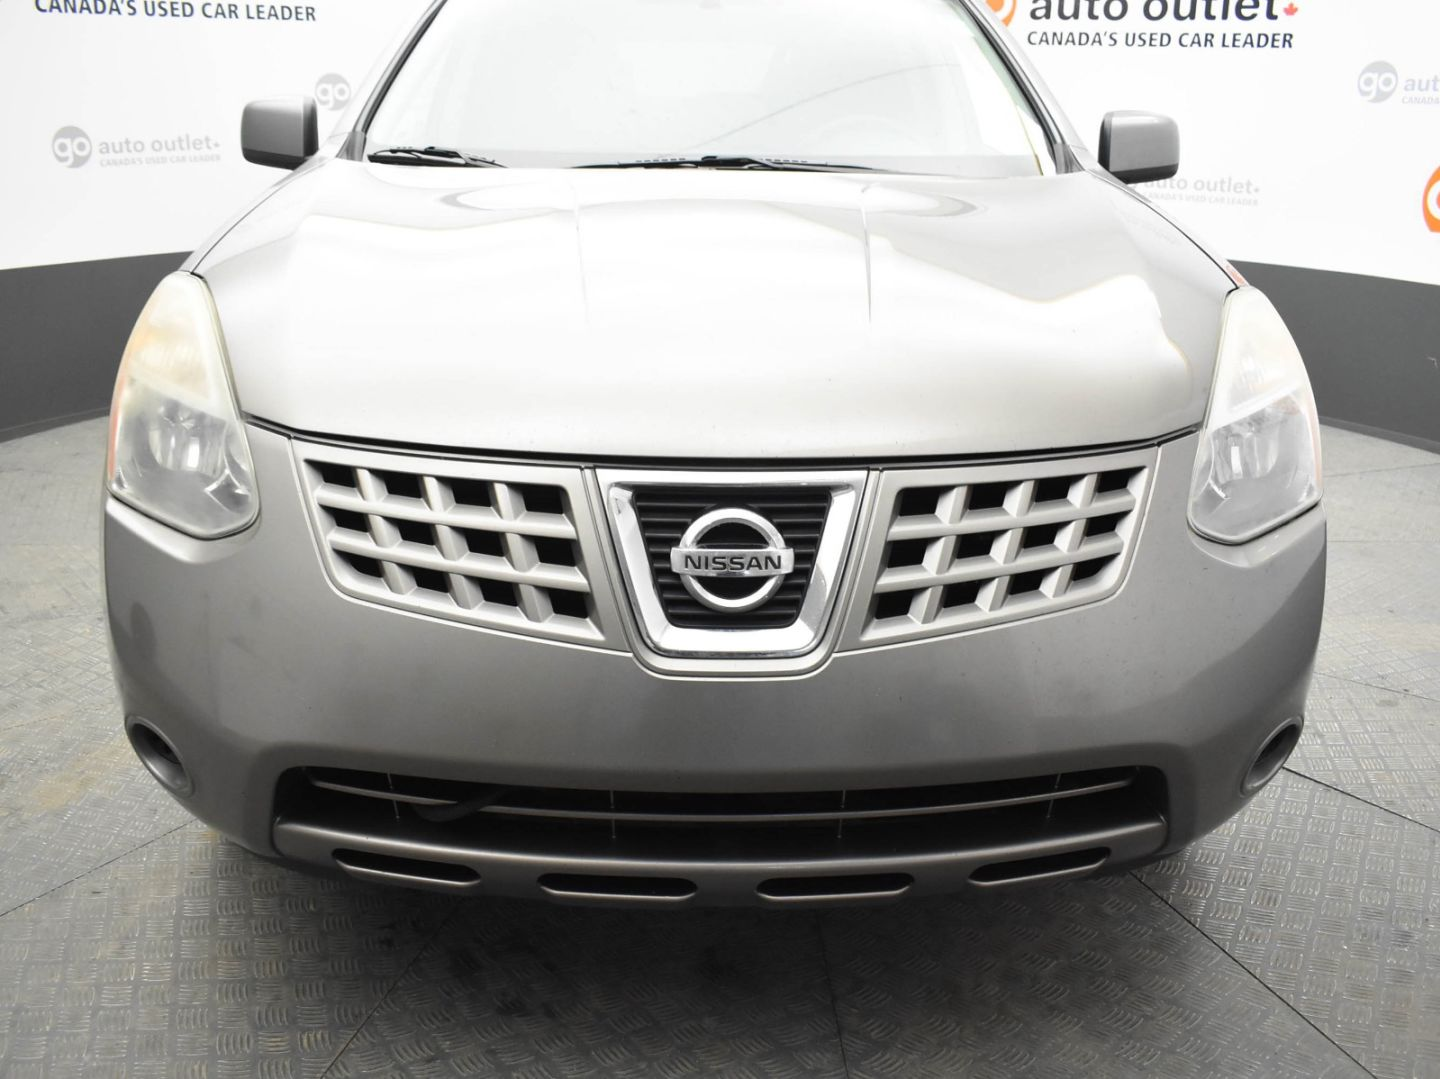 2009 Nissan Rogue SL for sale in Leduc, Alberta